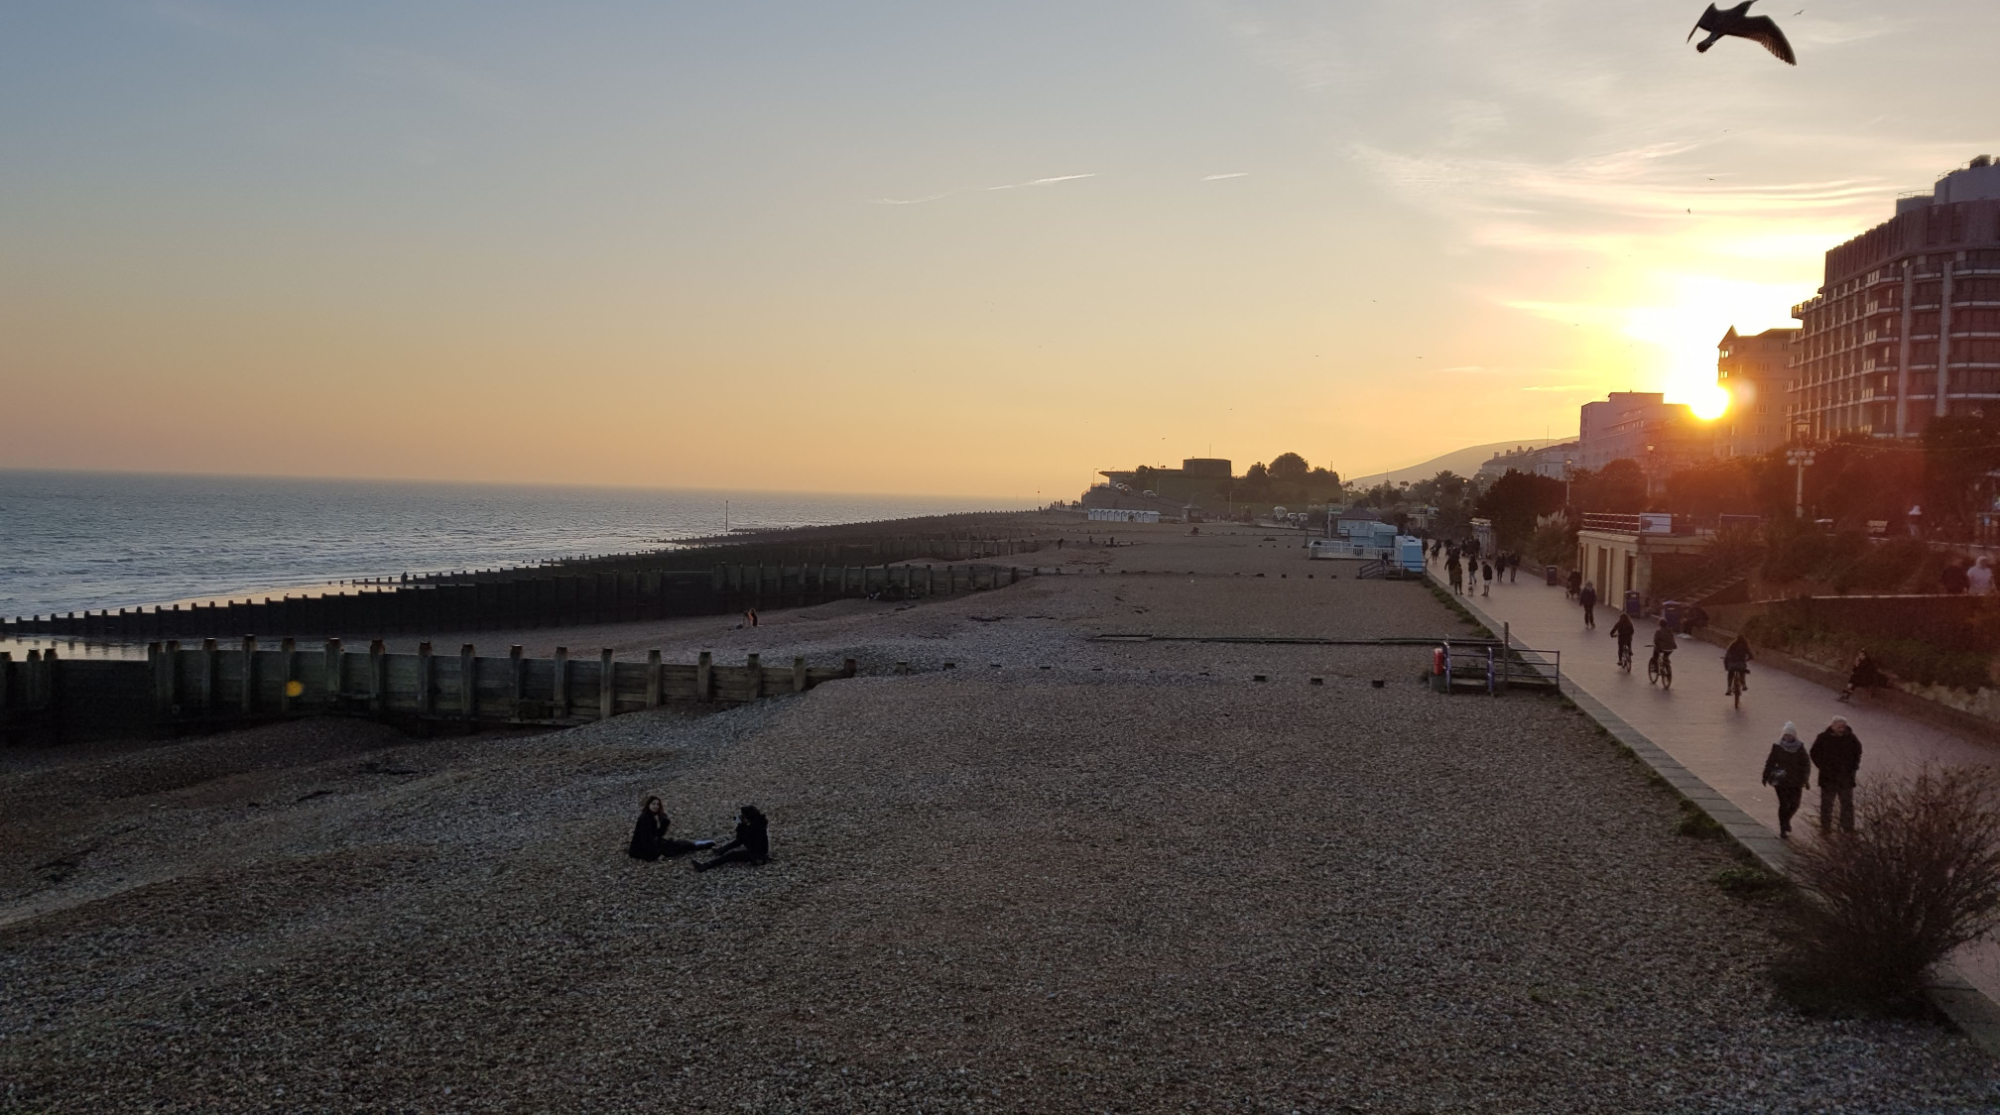 Eastbourne seafront at sunset